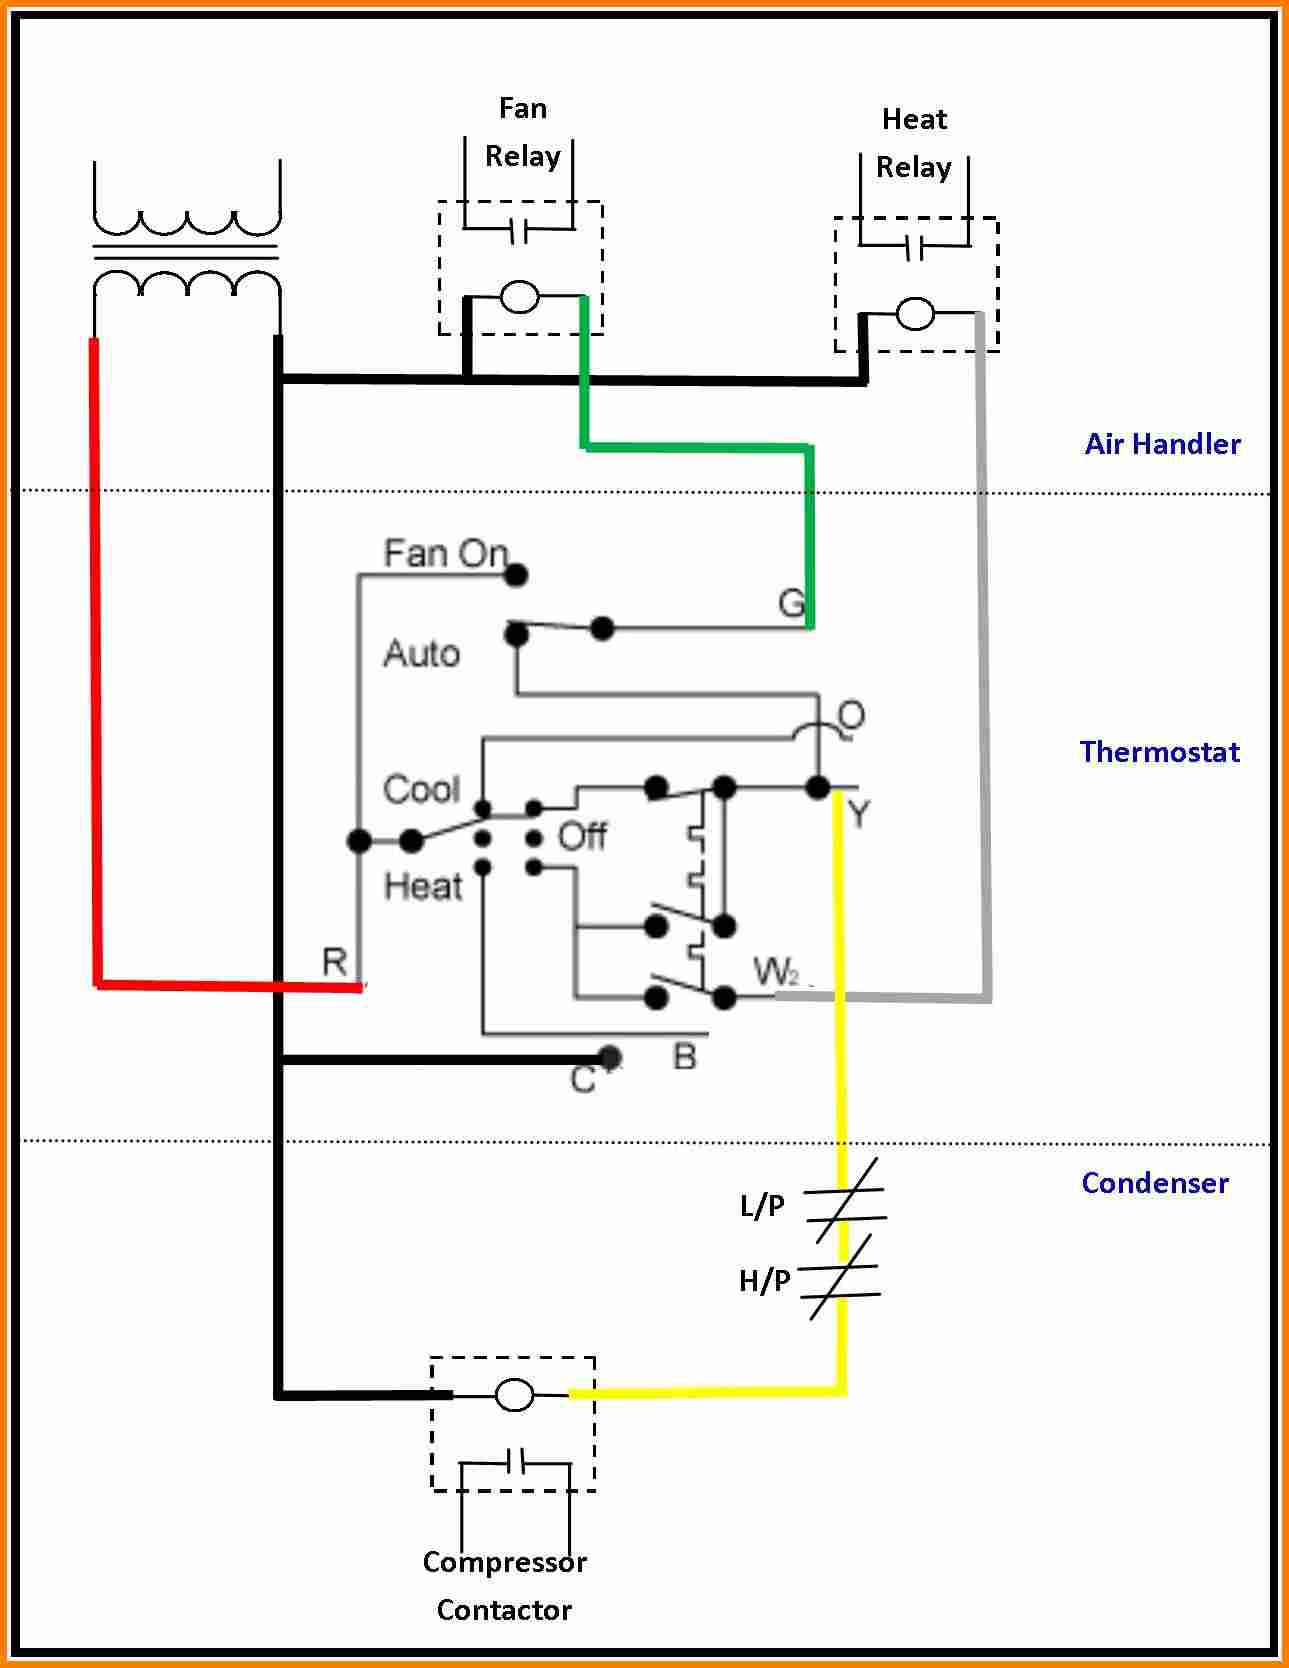 electric heat strip wiring diagram Collection-Electric Heat Strip Wiring Diagram Elegant Unusual Hvac Thermostat 13 11-g